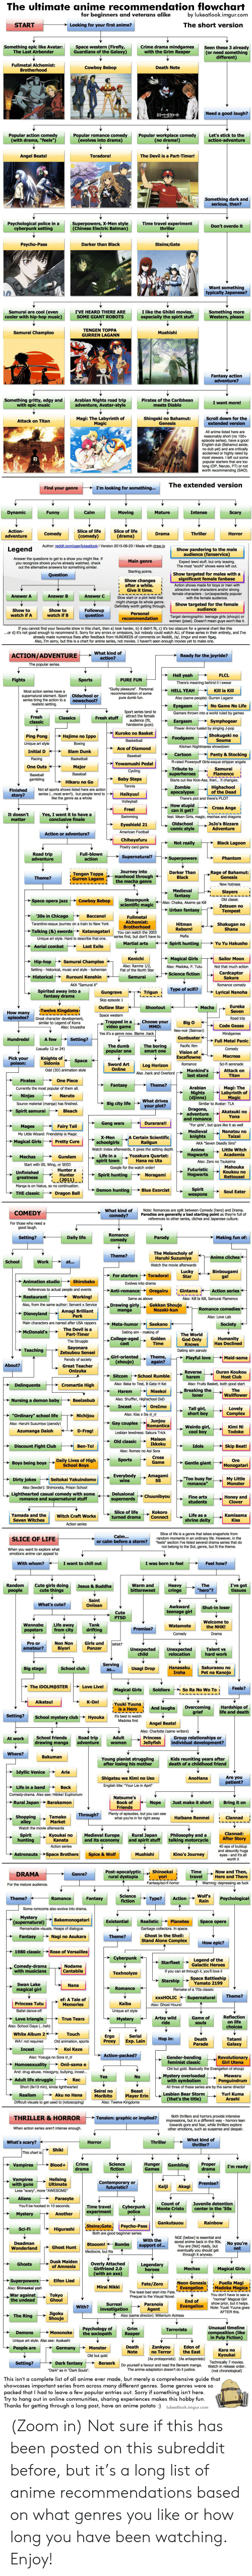 Abc, Af, and Anime: The ultimate anime recommendation flowchart  for beainners and veterans alike  y lukeatlook.imgur.com  Looking for vour first anime?  The short version  START  omething epic like Avatar:  Space western (Firefy  Guardians of the Galaxy)  (or ready  different)  Crime drama mindoames  Seen  with the Grim Reaper  The Last Airbender  Fullmetal Aichemist  Brotherhood  Cowboy Bebo0  Death Note  Need a good laugh?  Popular action comea  Popular workplace comedy  Let's stick to the  POpular romance comedy  Toradora!  Angel Beats!  The Devil is a Part-Timerl  omething dark and  Superpowers  (Chinese Electric Batman)  - Men style  Psychological police in a  cyberpunk setting  Time travel experiment  thriller  Don't overdo h  Darker than Biack  Pevcho-Pass  Steins:Gate  Want something  typically Japanese?  urai are cool (even  eic!  I like the Ghibli movies,  IVE HEARD THERE ARE  Something more  TENGEN TOPPA  Samurai Champlo  Mushishi  Fantasy action  Something gritty, edgy and  with epic music  Pirates of the Caribbean  meets Diablo  Arabian Nights road trip  adventure, Avatar-style  I want moret  Shingeki no Bahamut  Genesis  Magi: The Labyrinth o  Magic  Scroll down for the  extended version  Attack on Titan  Enaish dub (Bahamut anider  socimed or highly rled by  popular slartors that are loo  worth recommending (SAON  The extended version  Find your genre  I'm looking for something...  Intense  Calm  Moving  Dynamie  Funny  Mature  Scan  Slice of life  (drama)  Action  adenture  Slice of life  Comedy  Drama  Theiller  Horror  (comedy)  Author: pedditcomserubeaic ok I Version 2015-09-23 I Made with drwis  Legend  Show pandering to the male  audience (fanservice)  Anewer the questons to get to a show you might Be  you recognize ahows you've aready wanched, check  Main genre  arg.  The  Sarting points  Show targeted for males with a  Question  nges  Jction phowsmade for boys or men with  Answer B  Answer A  Answer C  might change its whole genre  Show targe